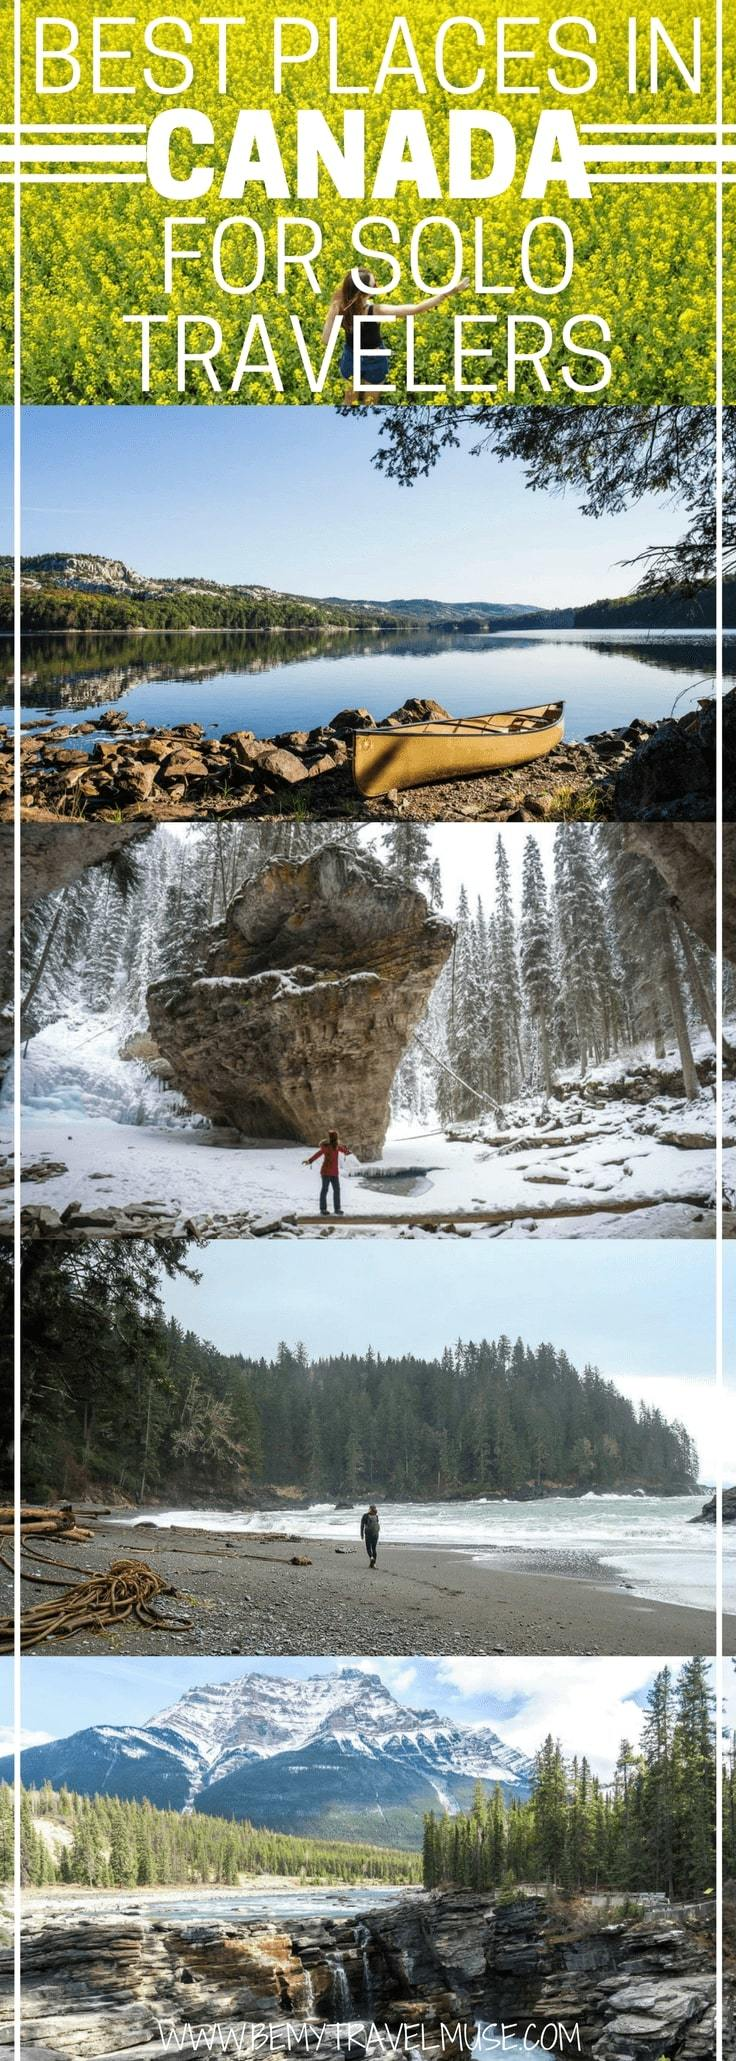 13 best places in Canada for solo travelers   Canada offers a mix of urban and nature travels, it is also very safe to travel solo in, and good to visit any time of the year. What's not to love? Travel bloggers around the world share their favorite spots in Canada that are perfect for solo travelers. Check it out! Be My Travel Muse   Canada travel tips   Solo female travel Canada